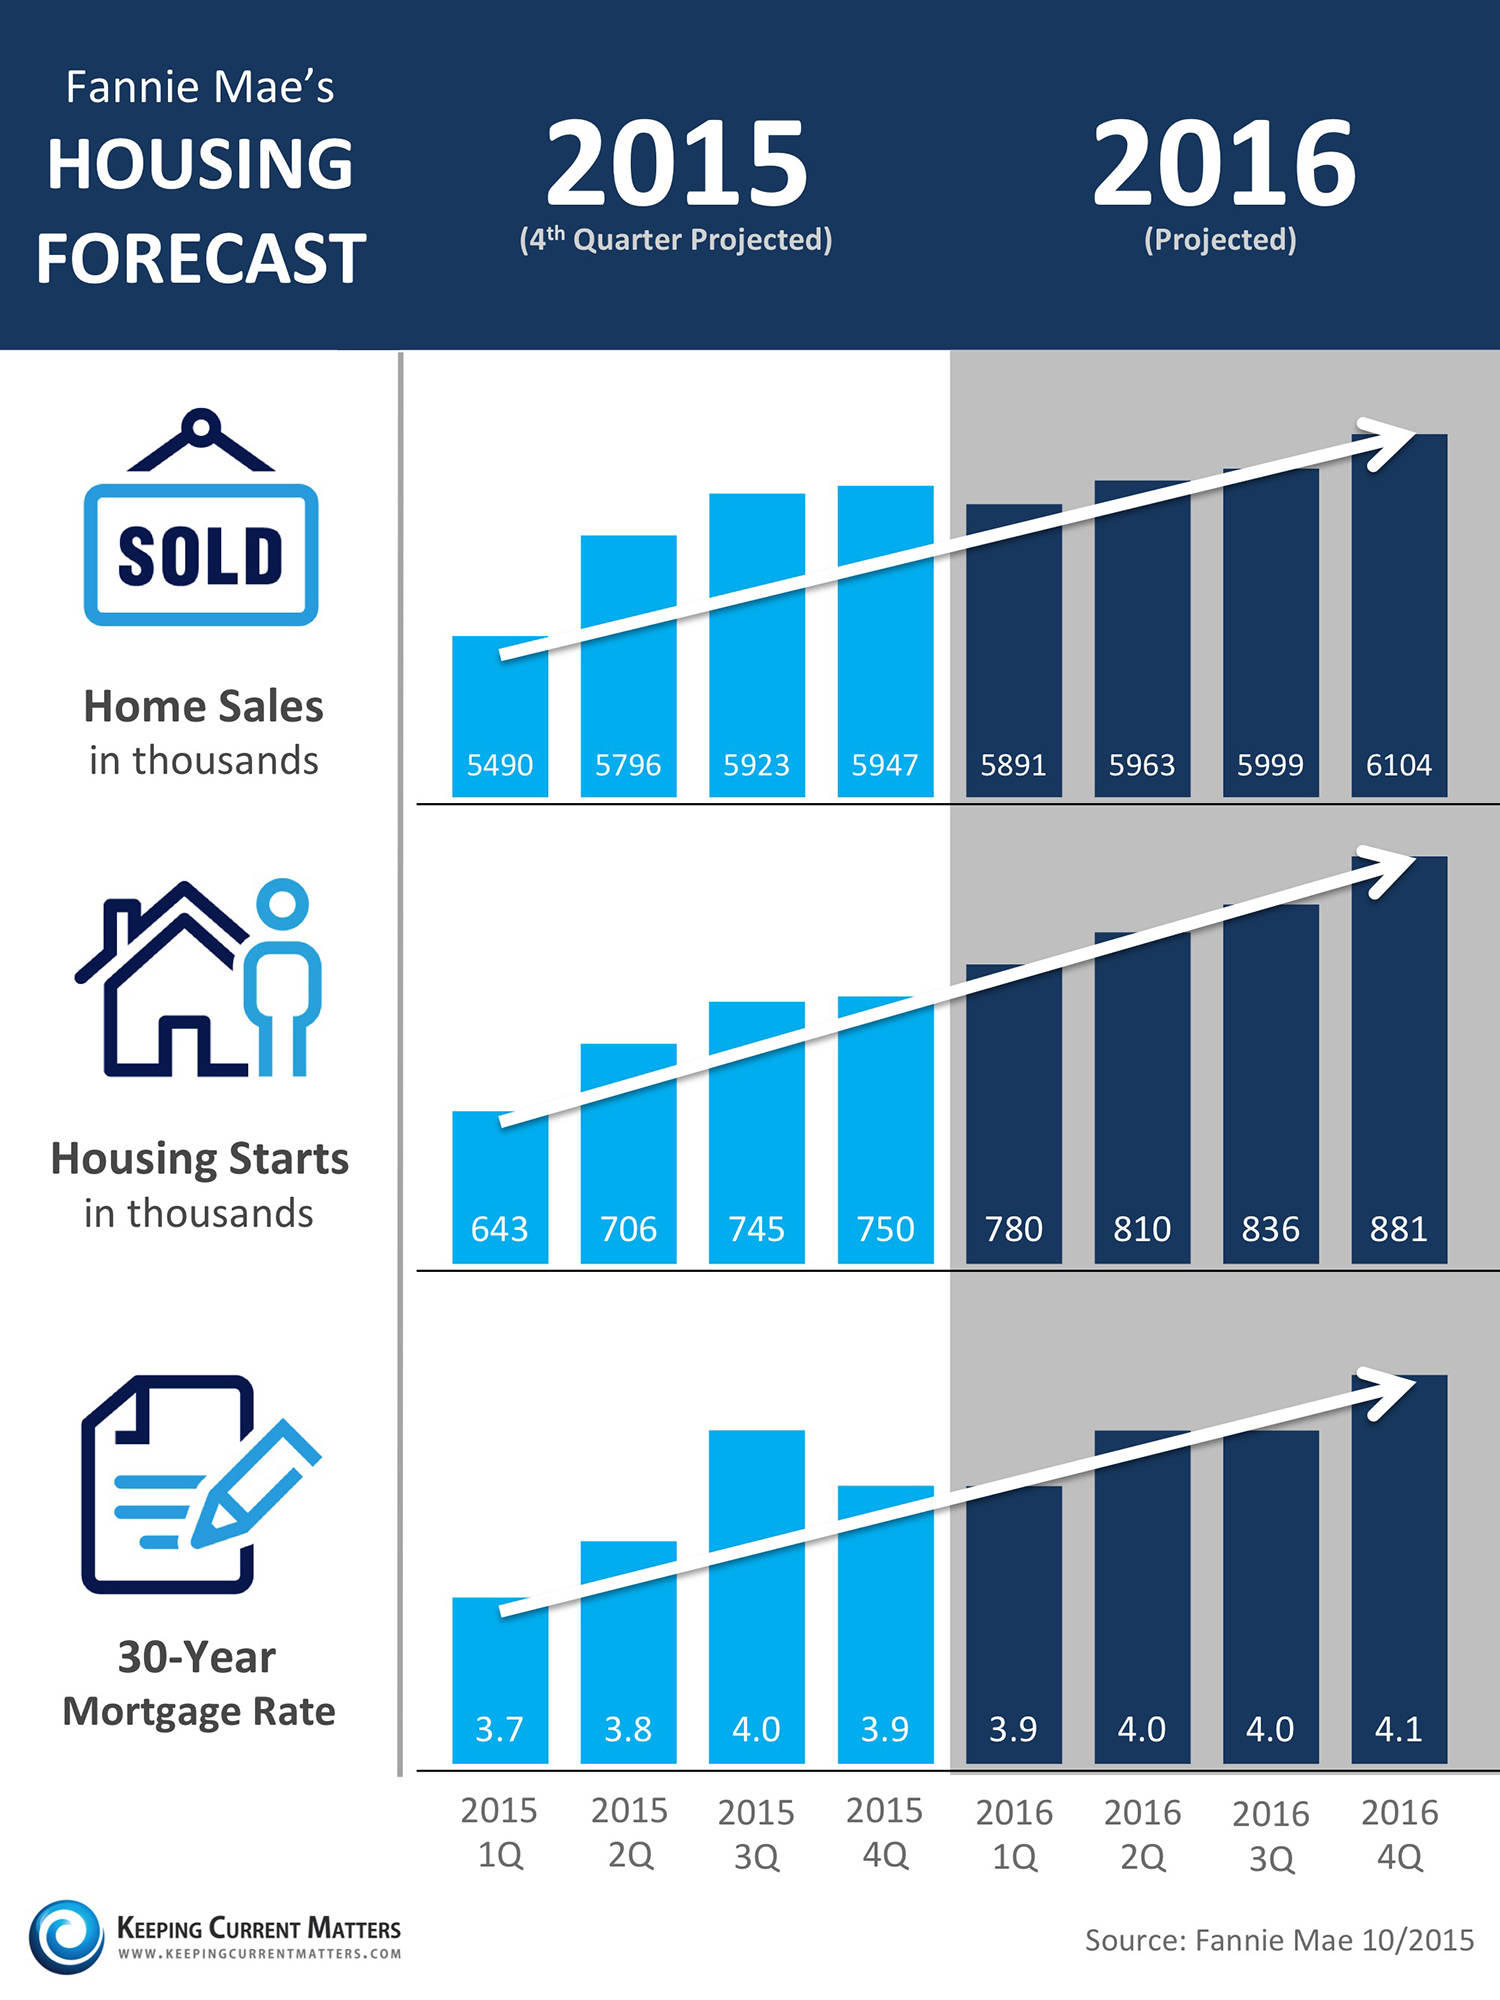 will the fed raising rates affect moorpark home prices